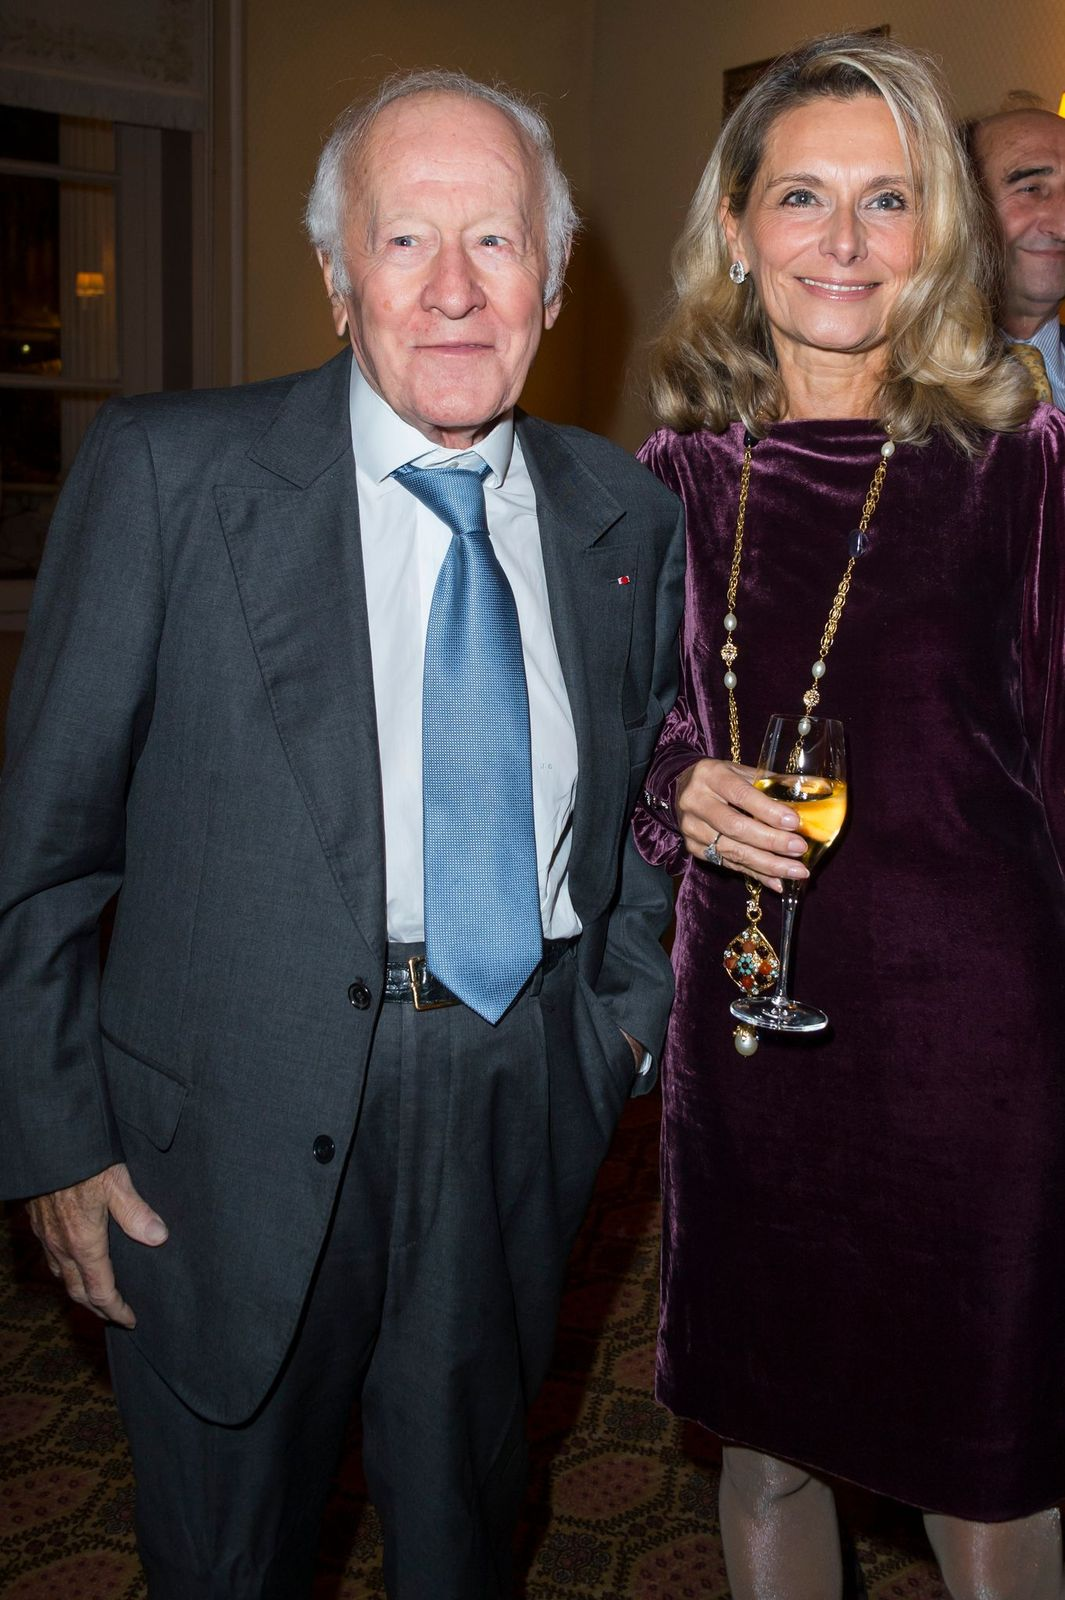 Jacques Chancel et sa compagne Martine | Photo : Getty Images.